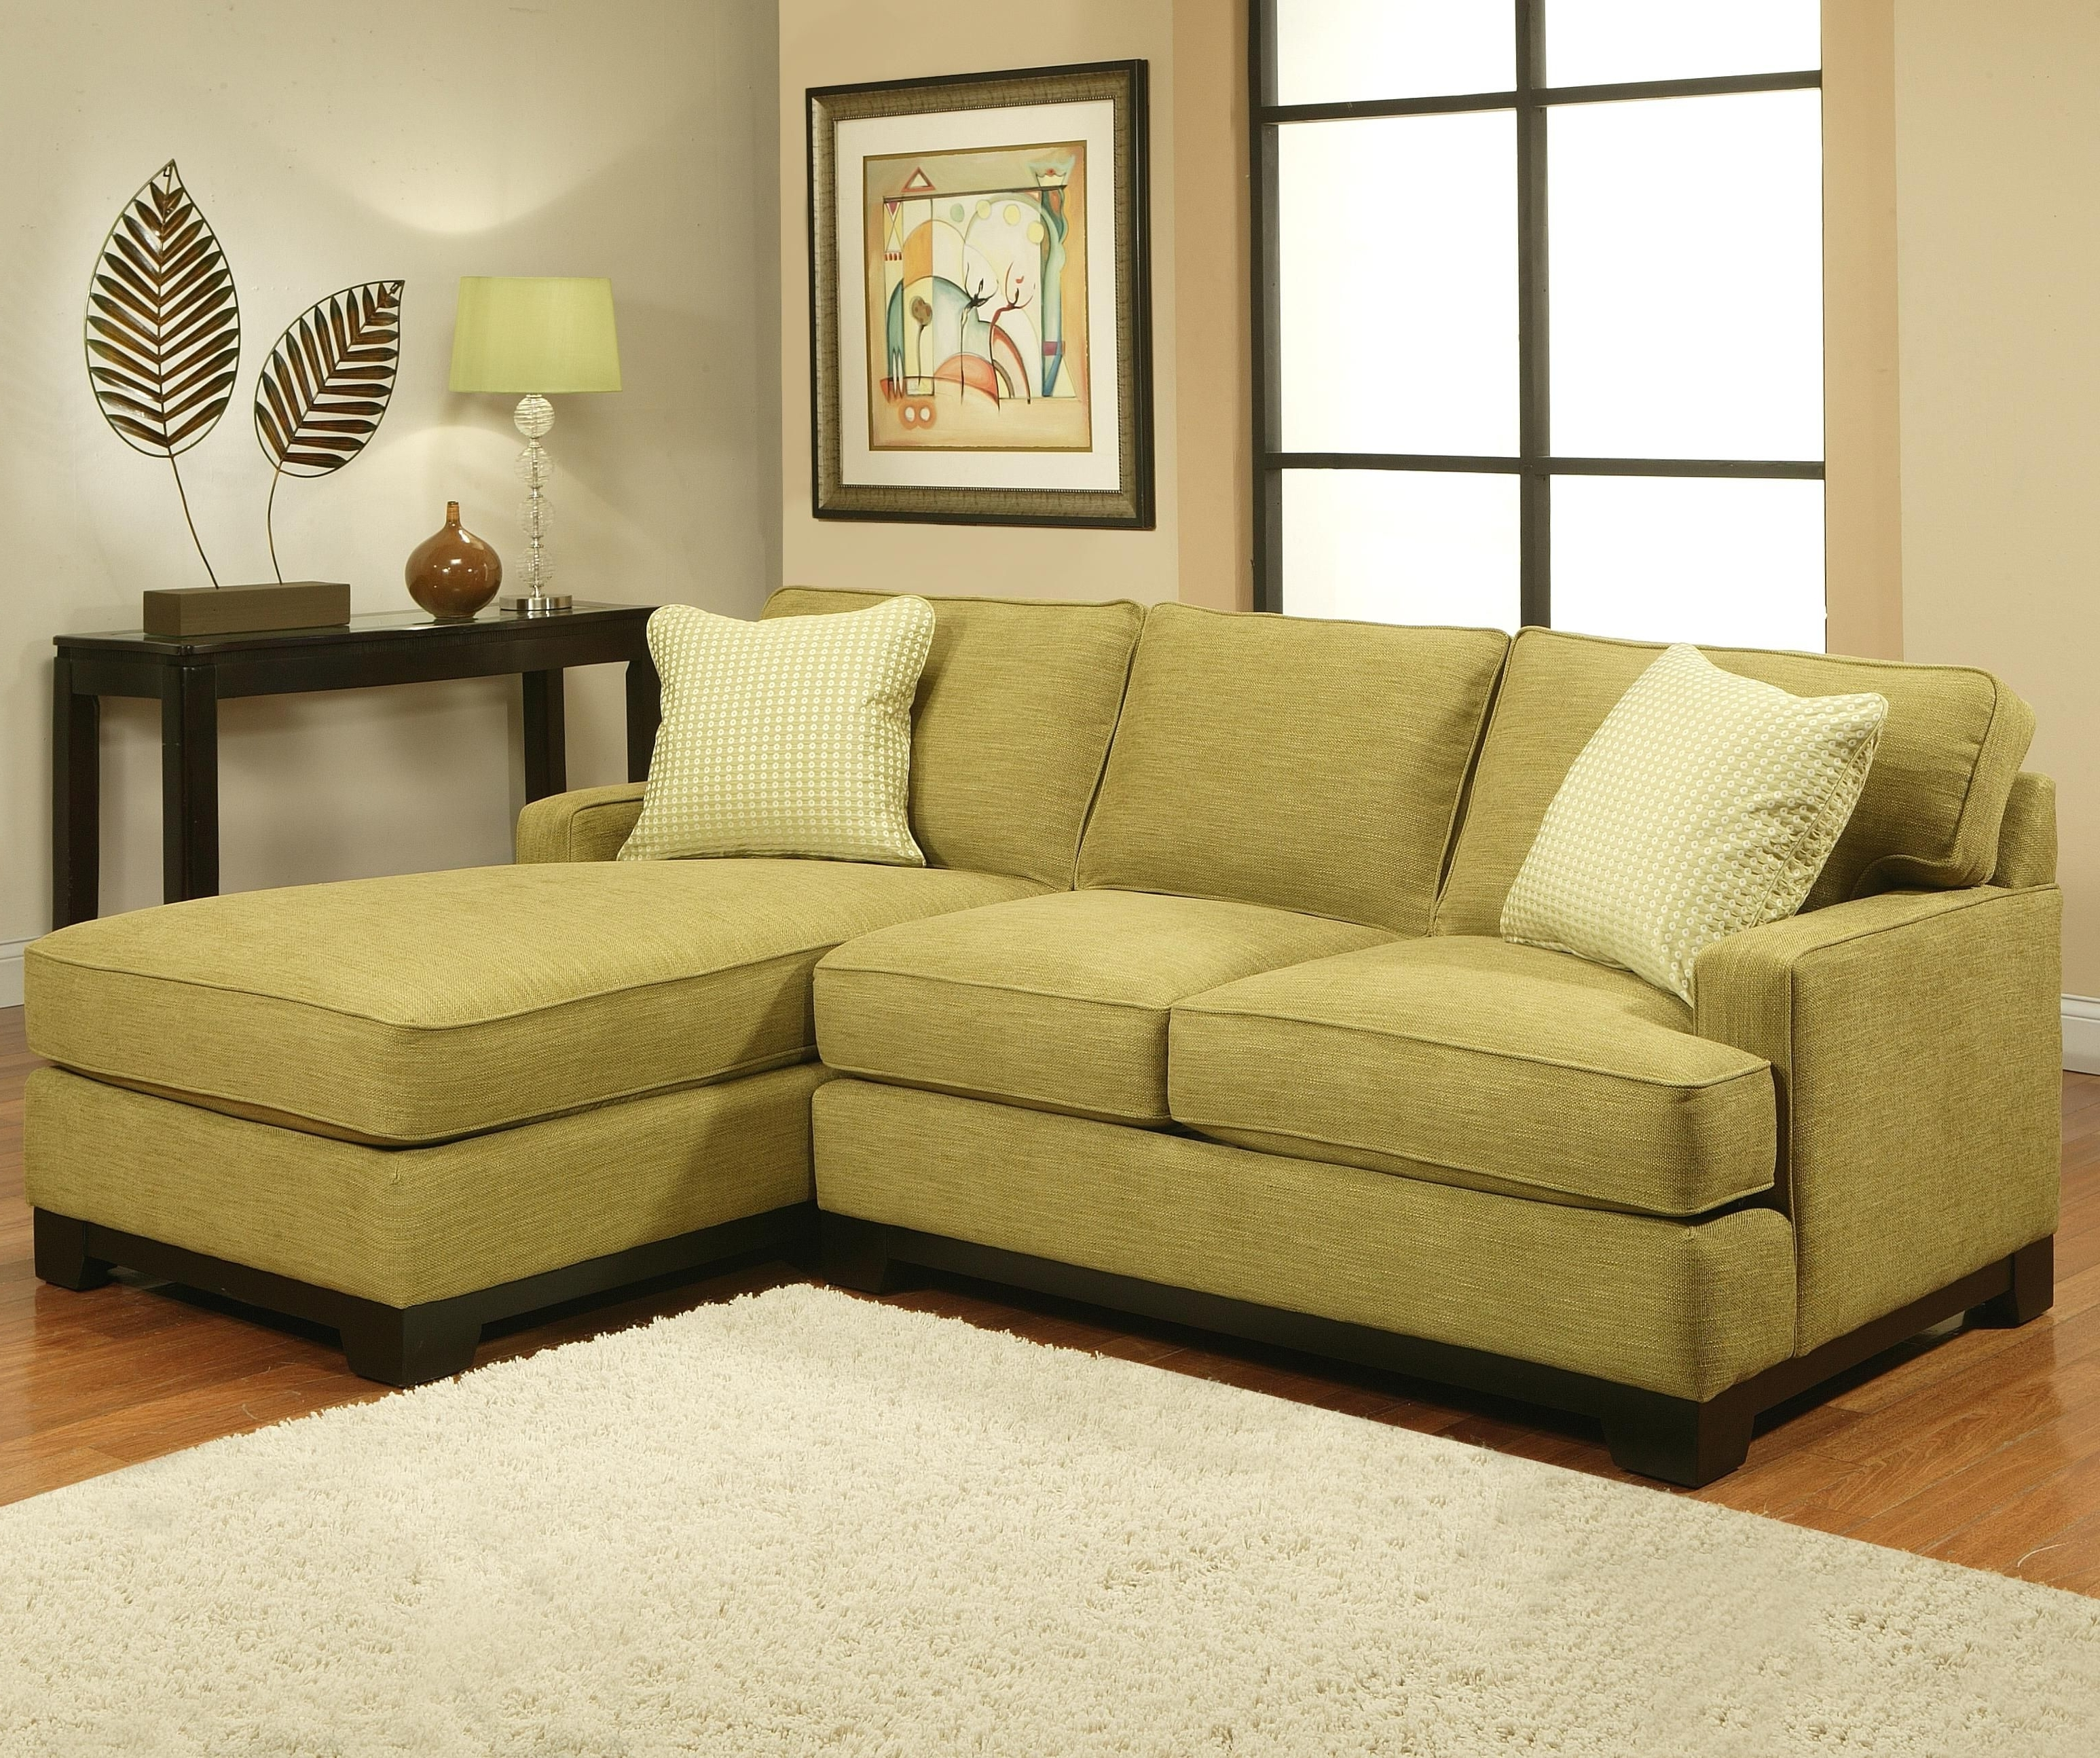 Nova Scotia Sectional Sofas Intended For 2019 Choices – Kronos Contemporary Sectional Sofa With Track Arms (View 17 of 20)